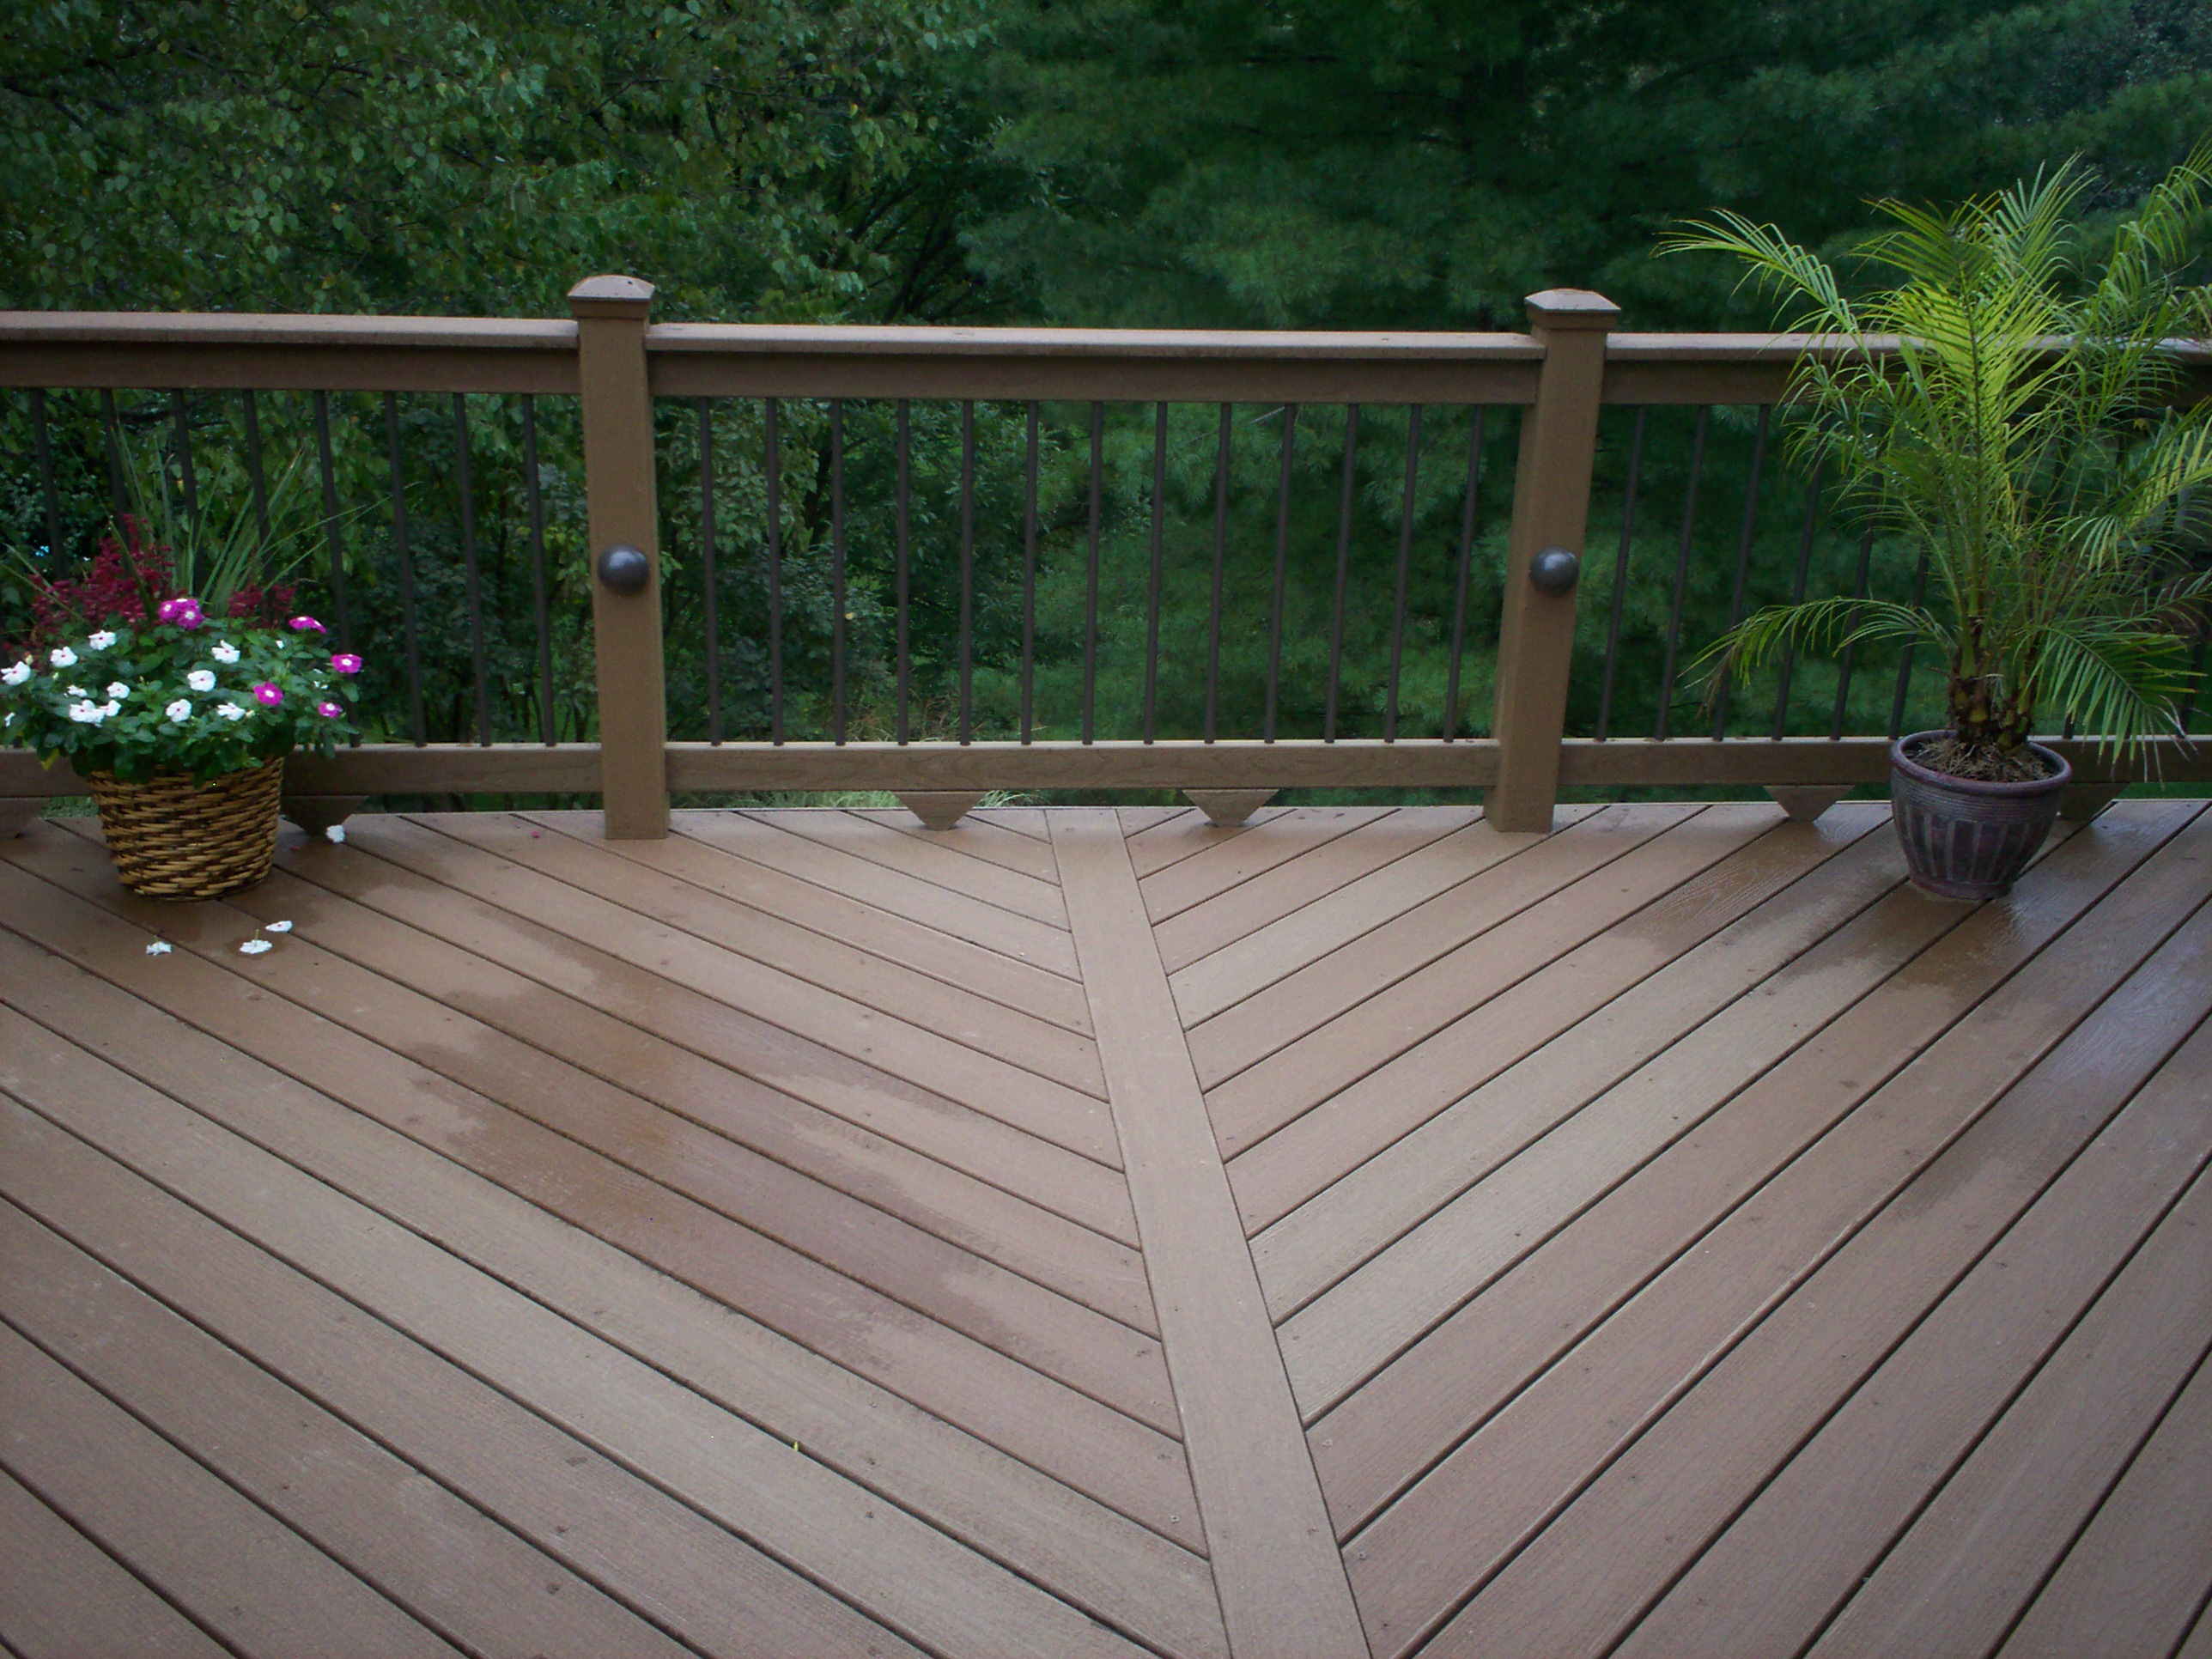 St louis deck designs with floor board patterns